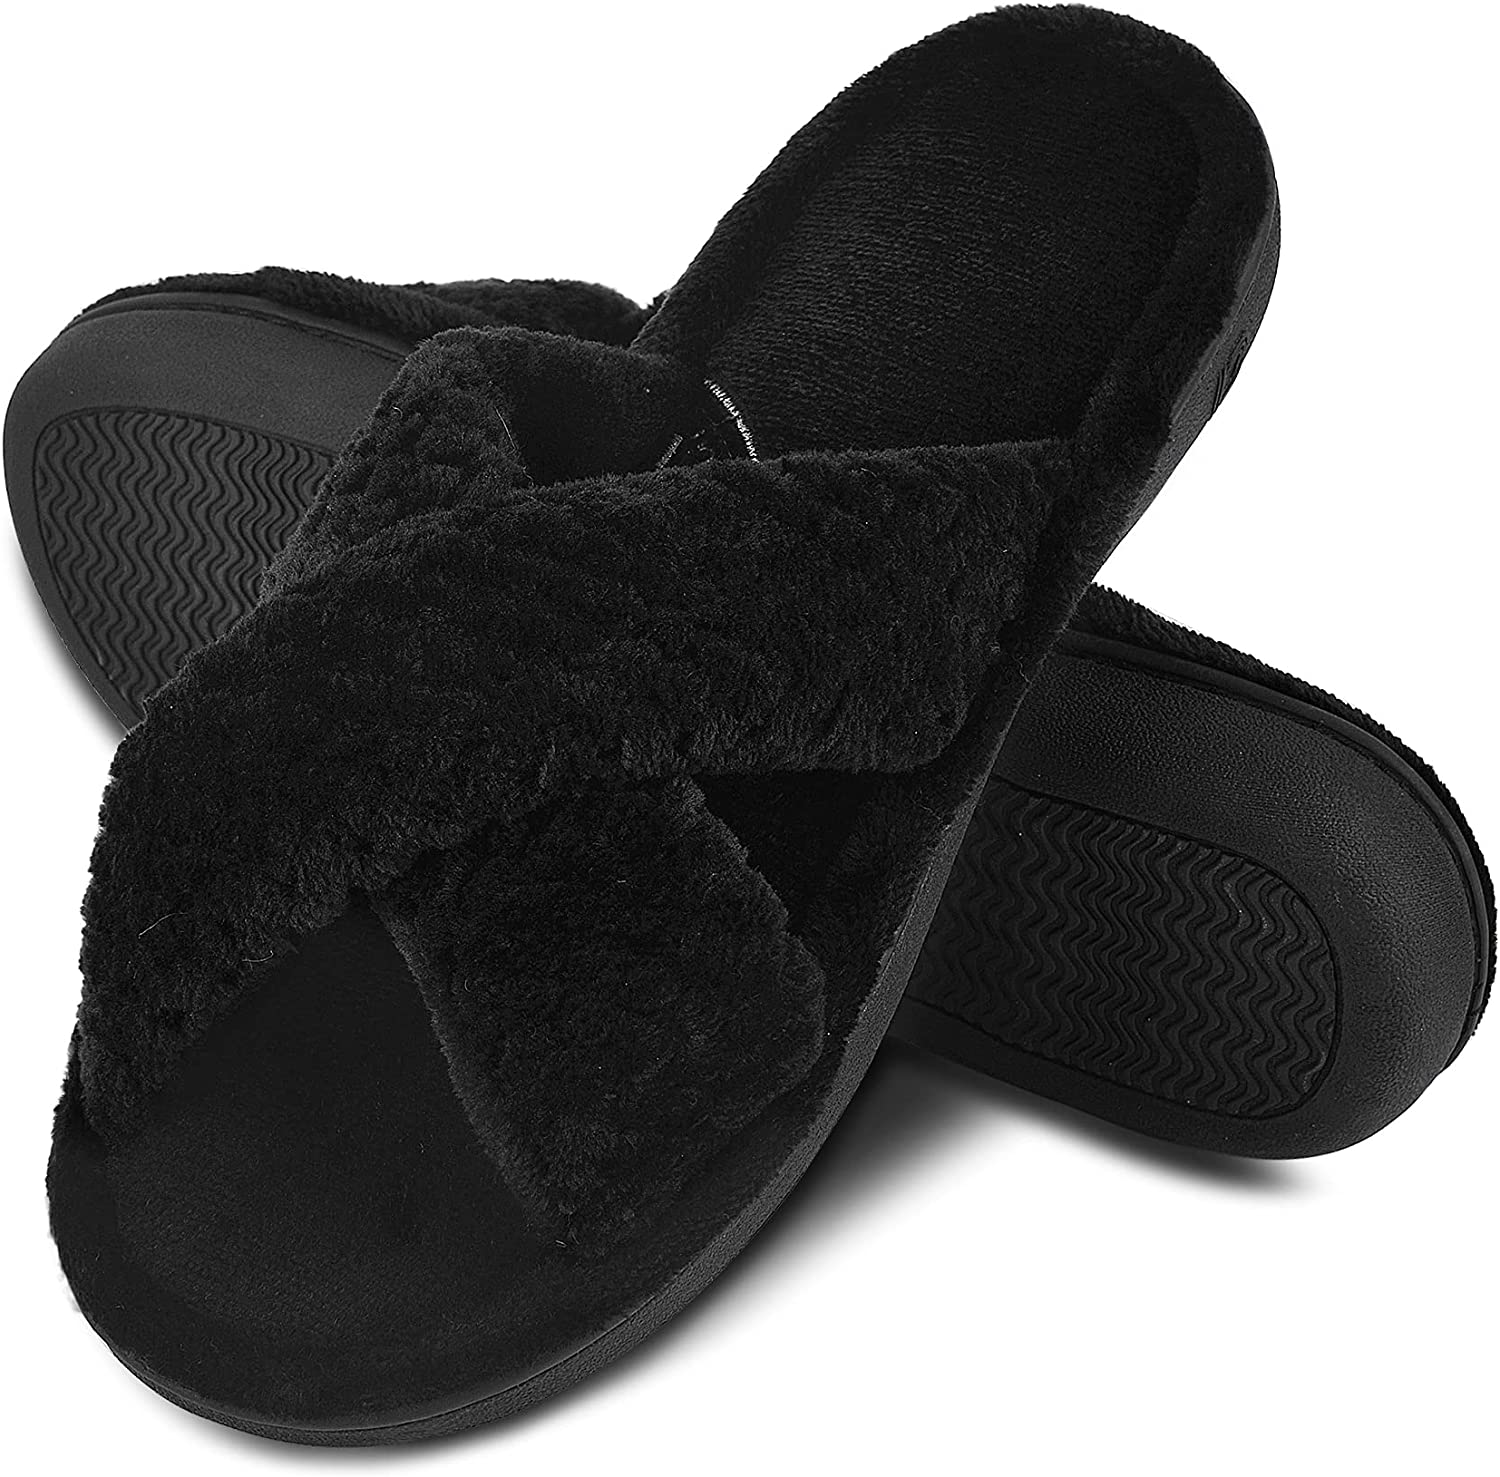 DL Women's Open Toe Cross Band Slippers, Memory Foam Slip on Home Slippers for Women with Indoor Outdoor Arch Support Rubber Sole